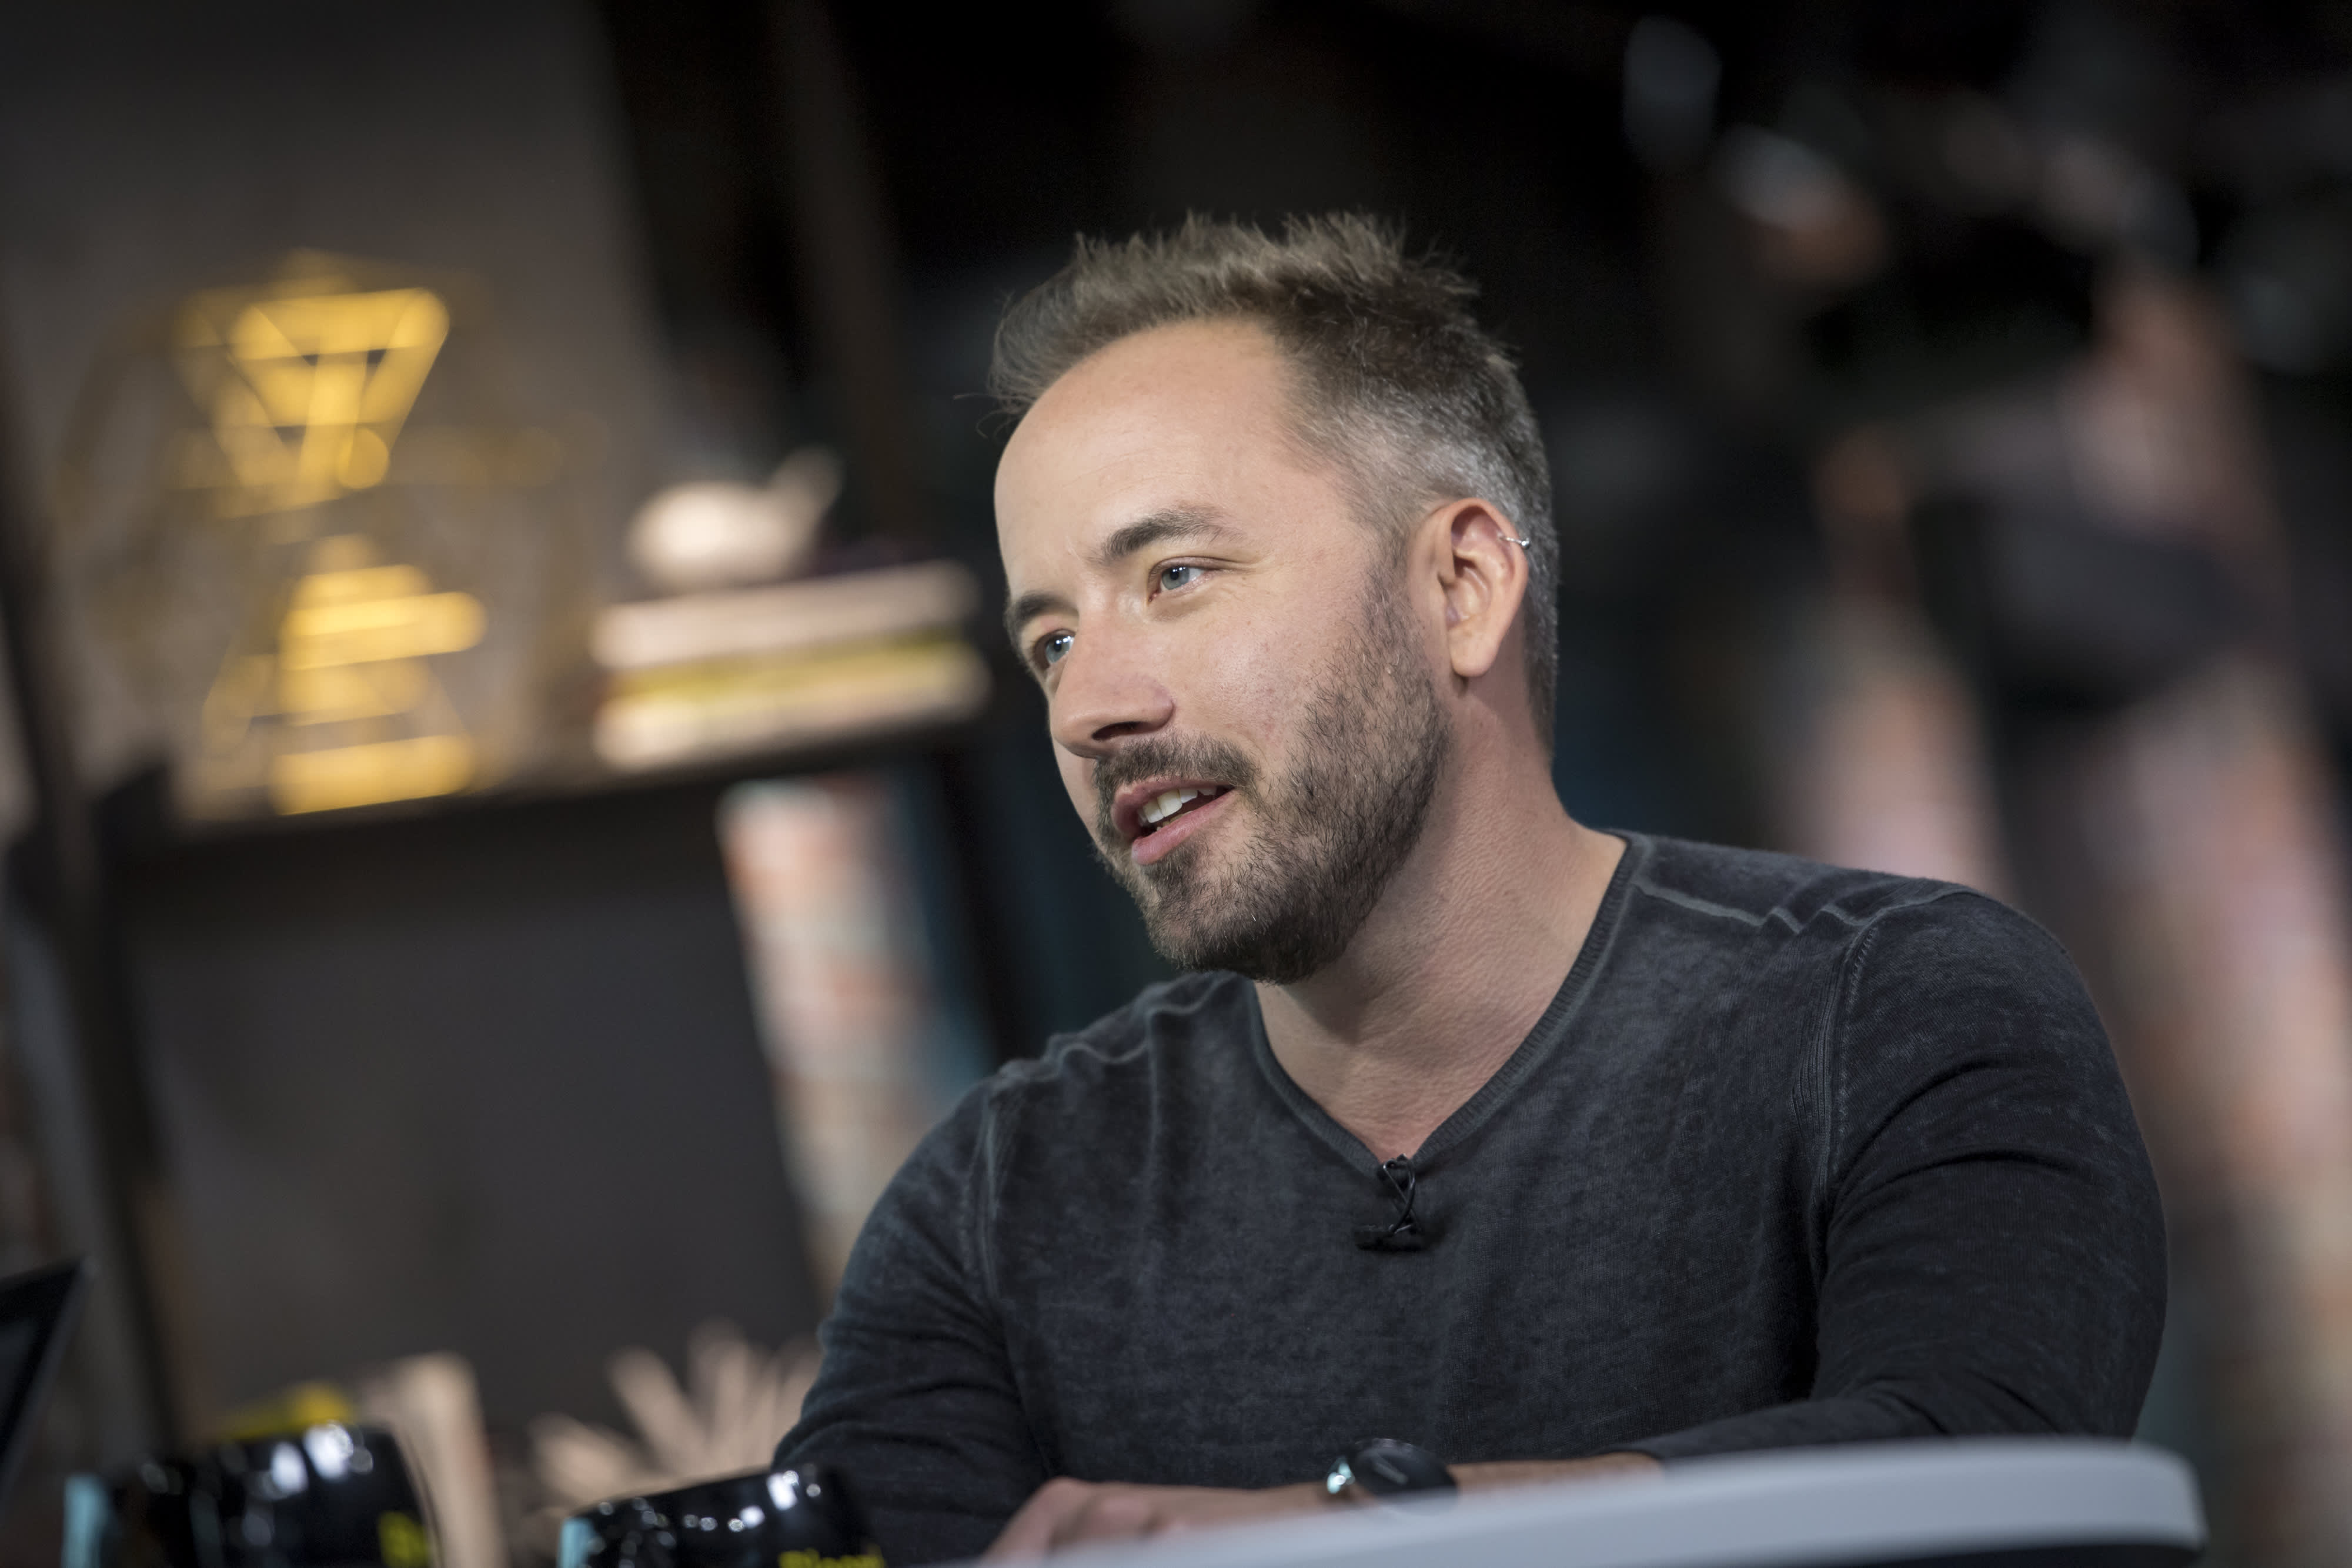 Dropbox shares plummet after user growth slows, but CEO still sees expansion ahead this year